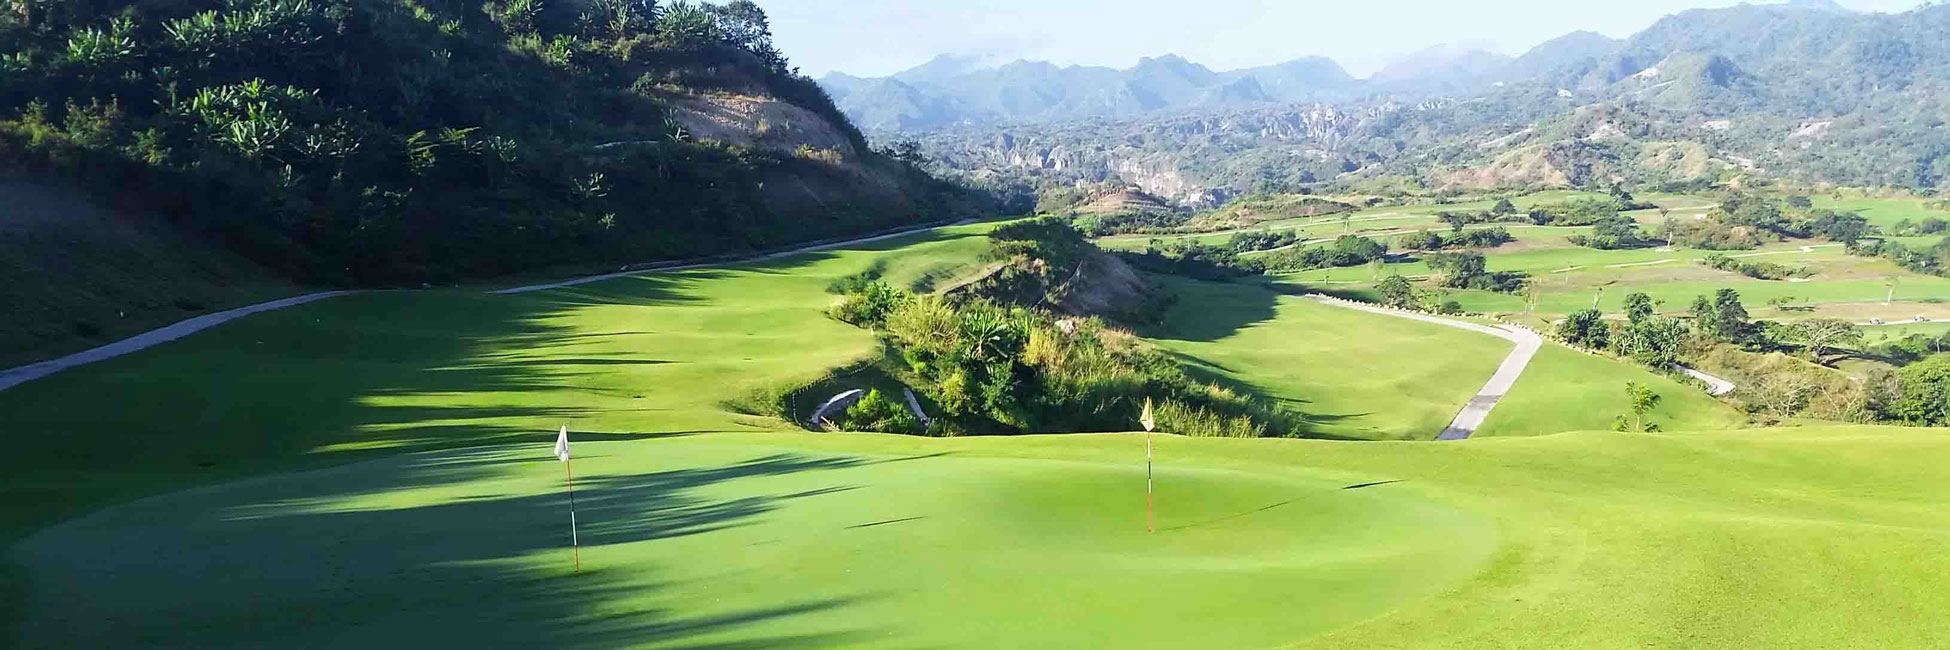 Golf Course in Philippines